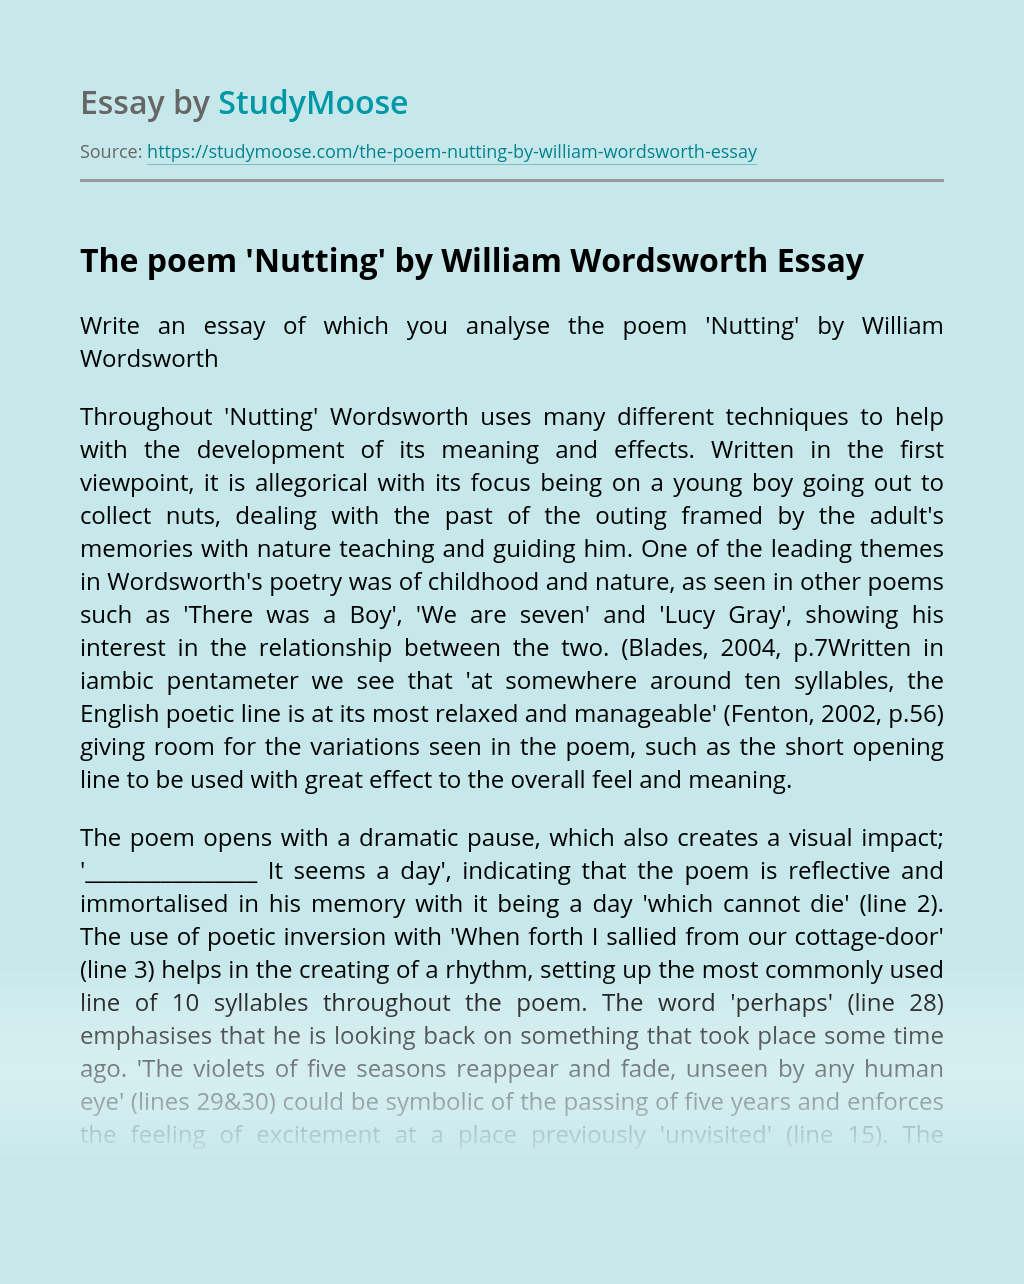 The poem 'Nutting' by William Wordsworth